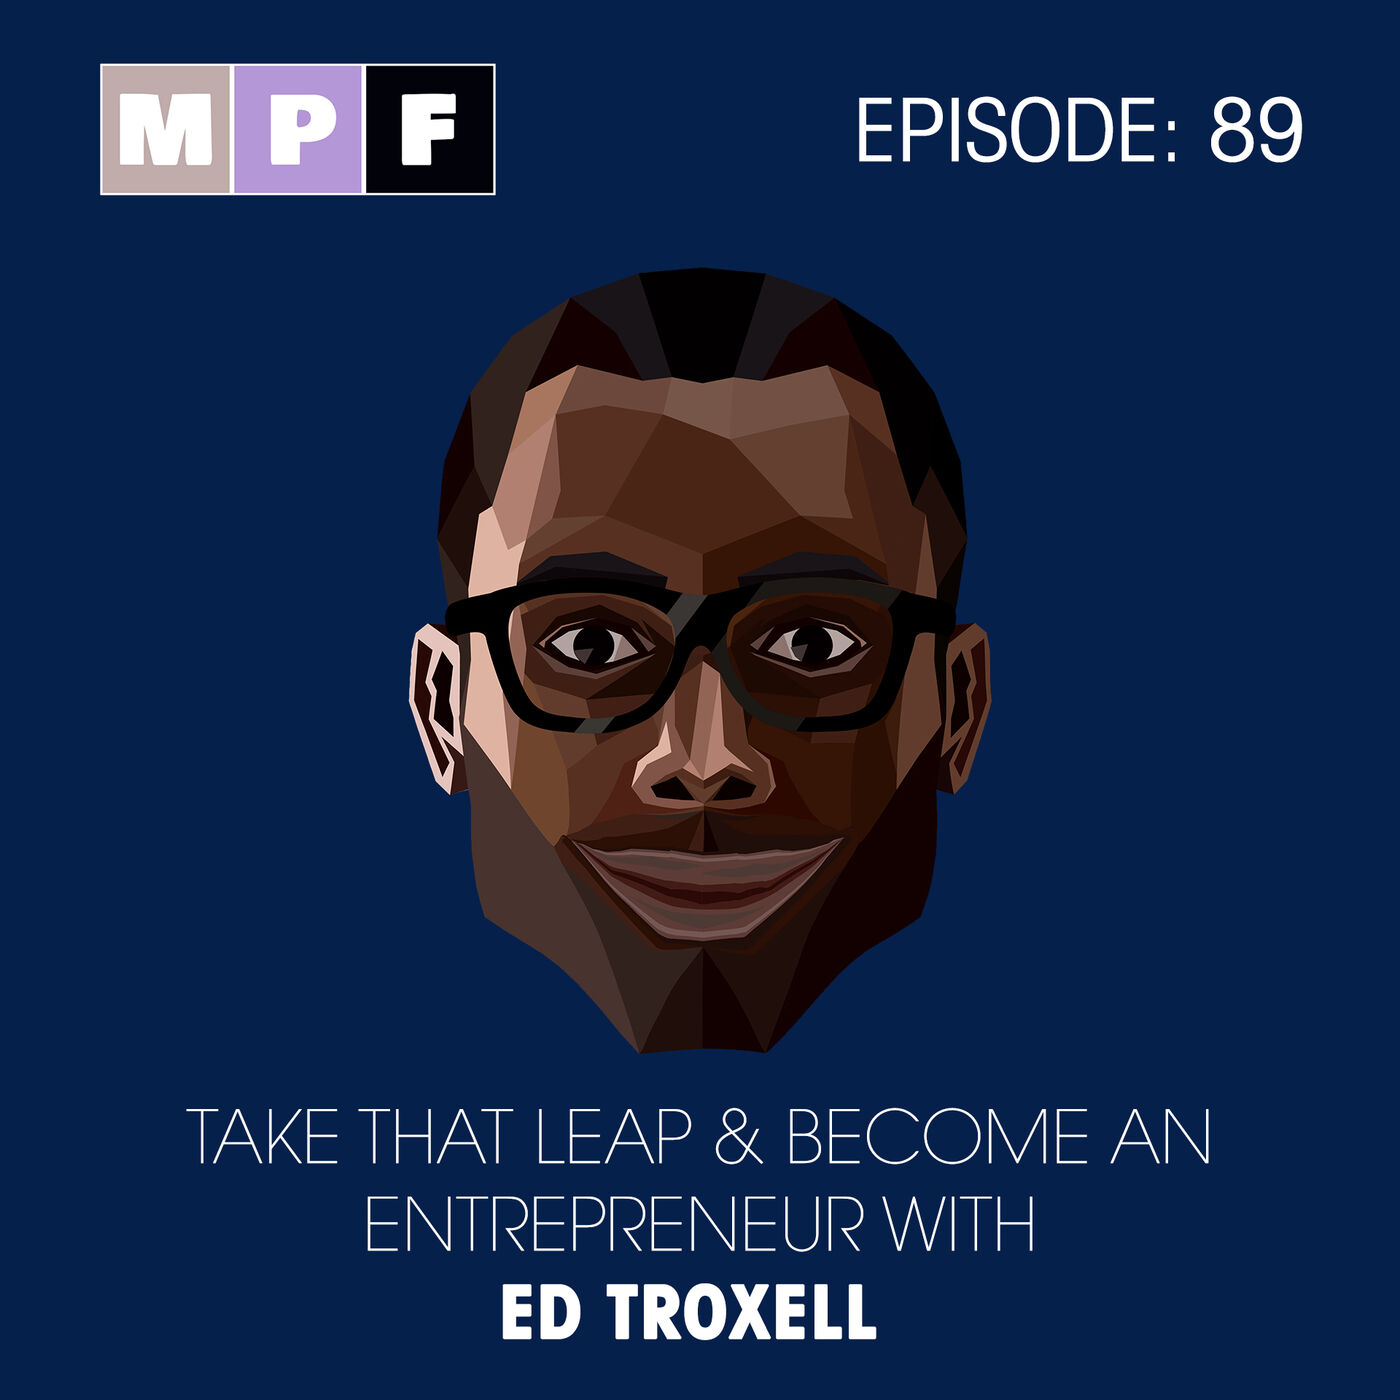 Take That Leap & Become an Entrepreneur with Ed Troxell